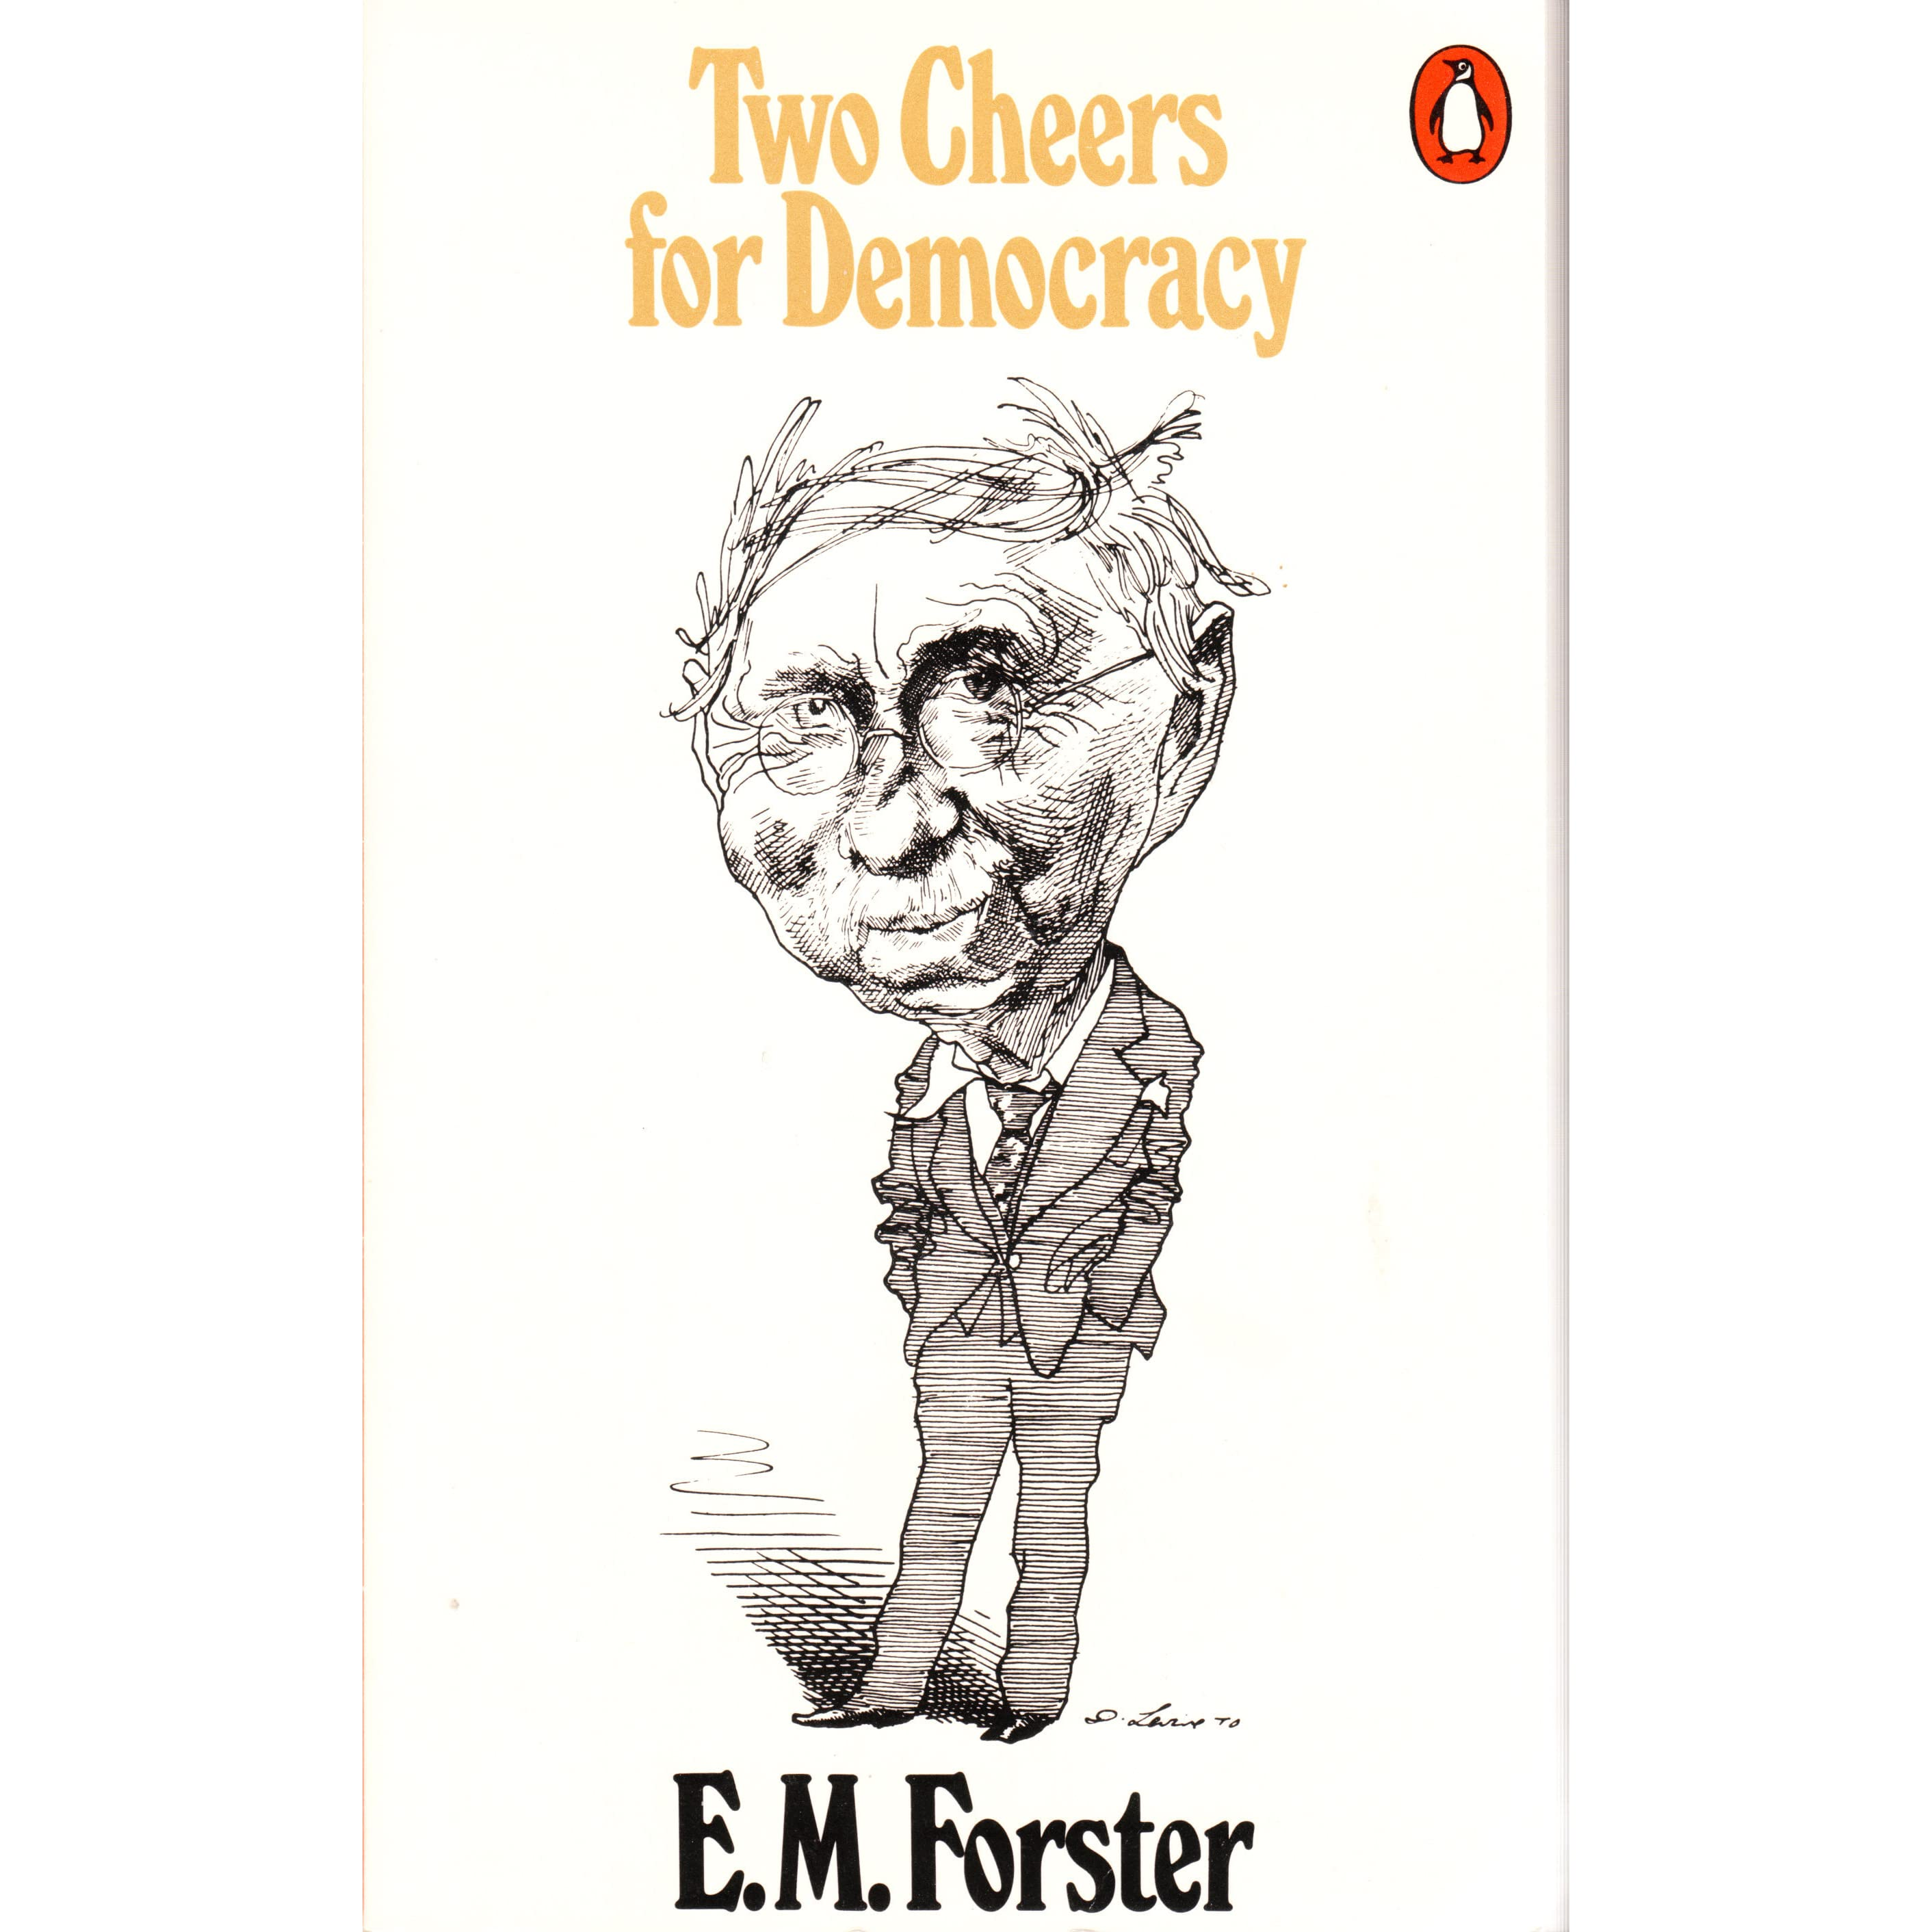 two cheers for democracy essay Two cheers for democracy: em forster: 9780140023626: books - amazonca amazonca try prime books go search en hello sign in your account sign in.